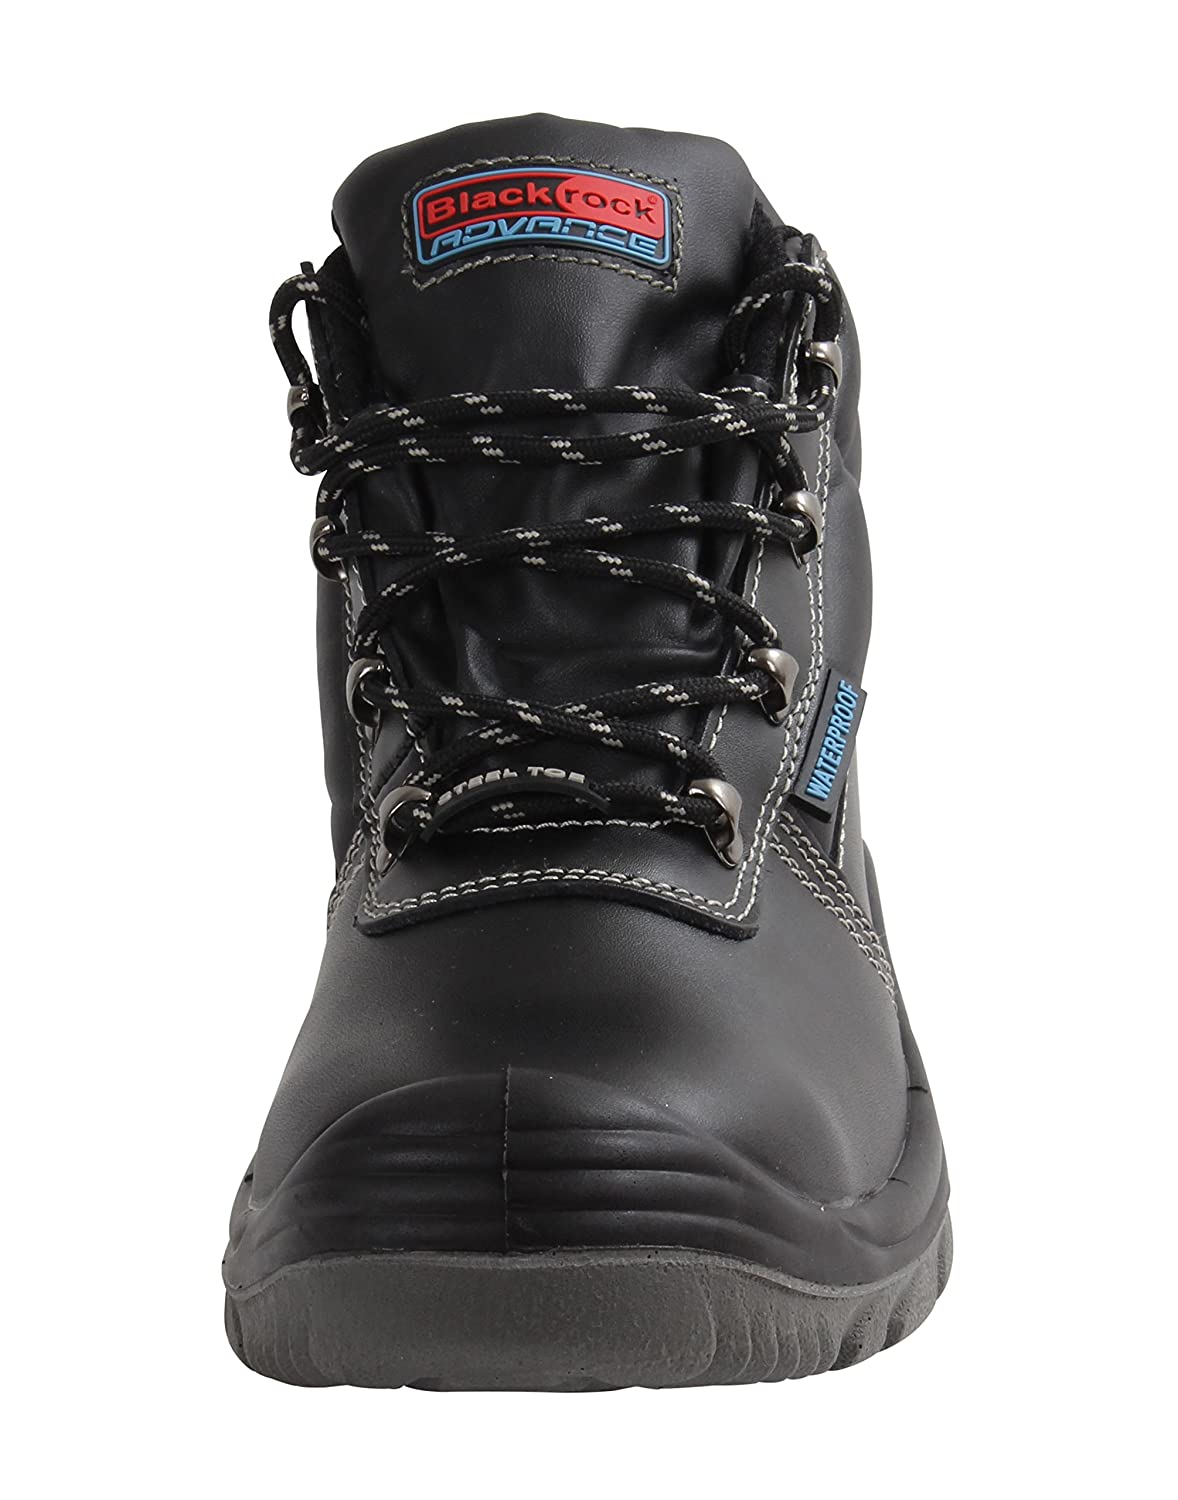 Blackrock sf7510 Wasserdicht Sicherheit Hiker hmPXY